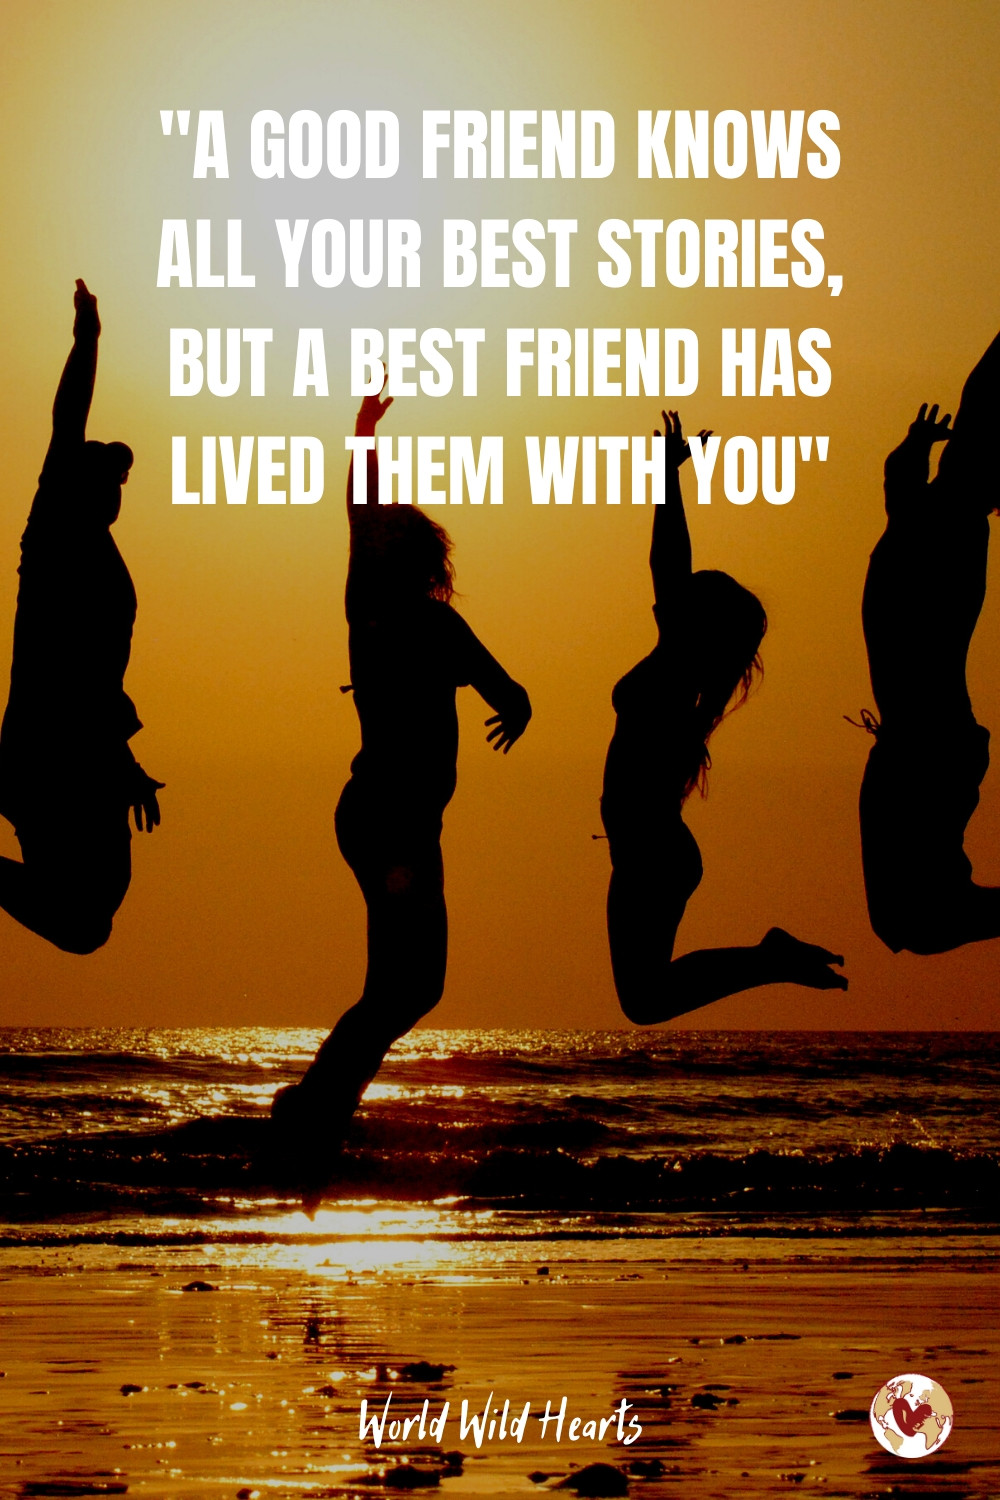 Friend stories travel quote